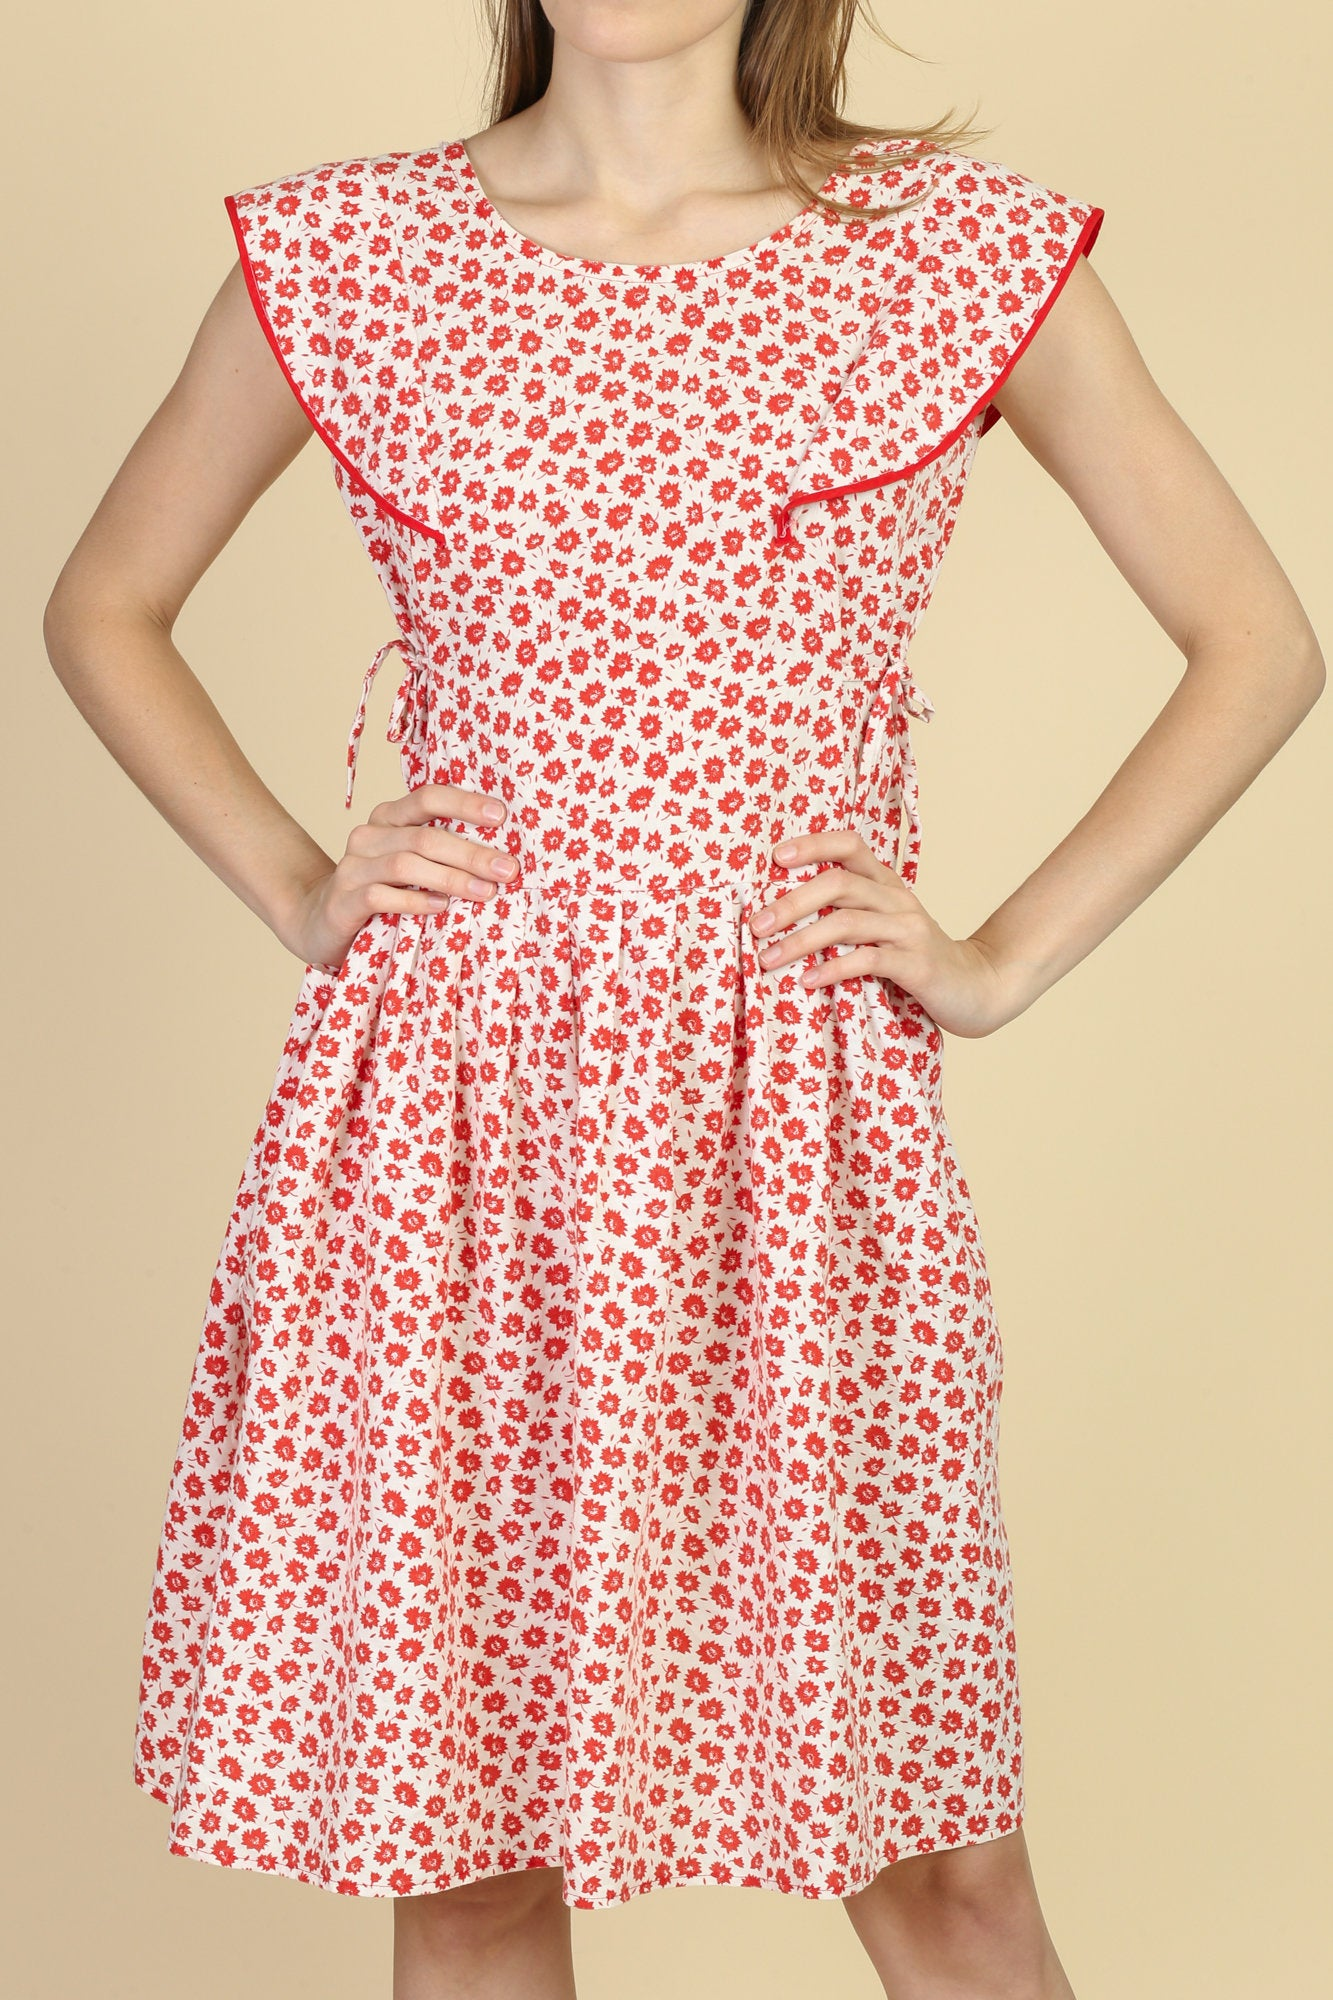 50s Floral Pocket Day Dress - Small